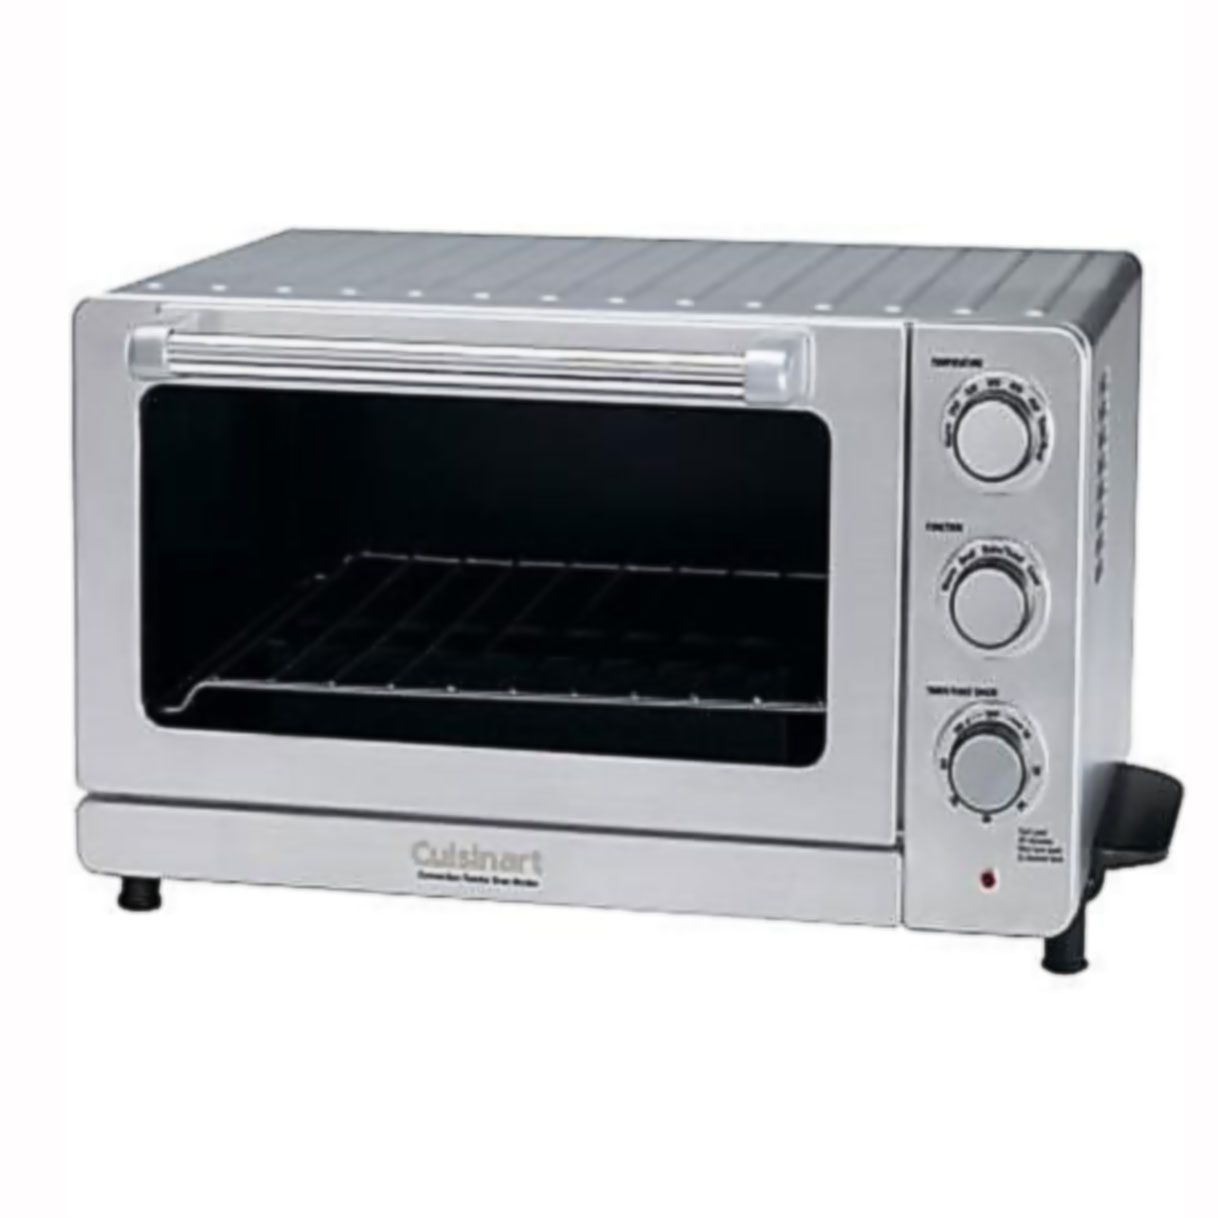 Toaster Oven Broiler With Convection 6 Cu Foot Fits A 12 In Pizza 1500 Watts And Up To 500 176 Bake Toaster Oven Cuisinart Toaster Oven Cuisinart Toaster